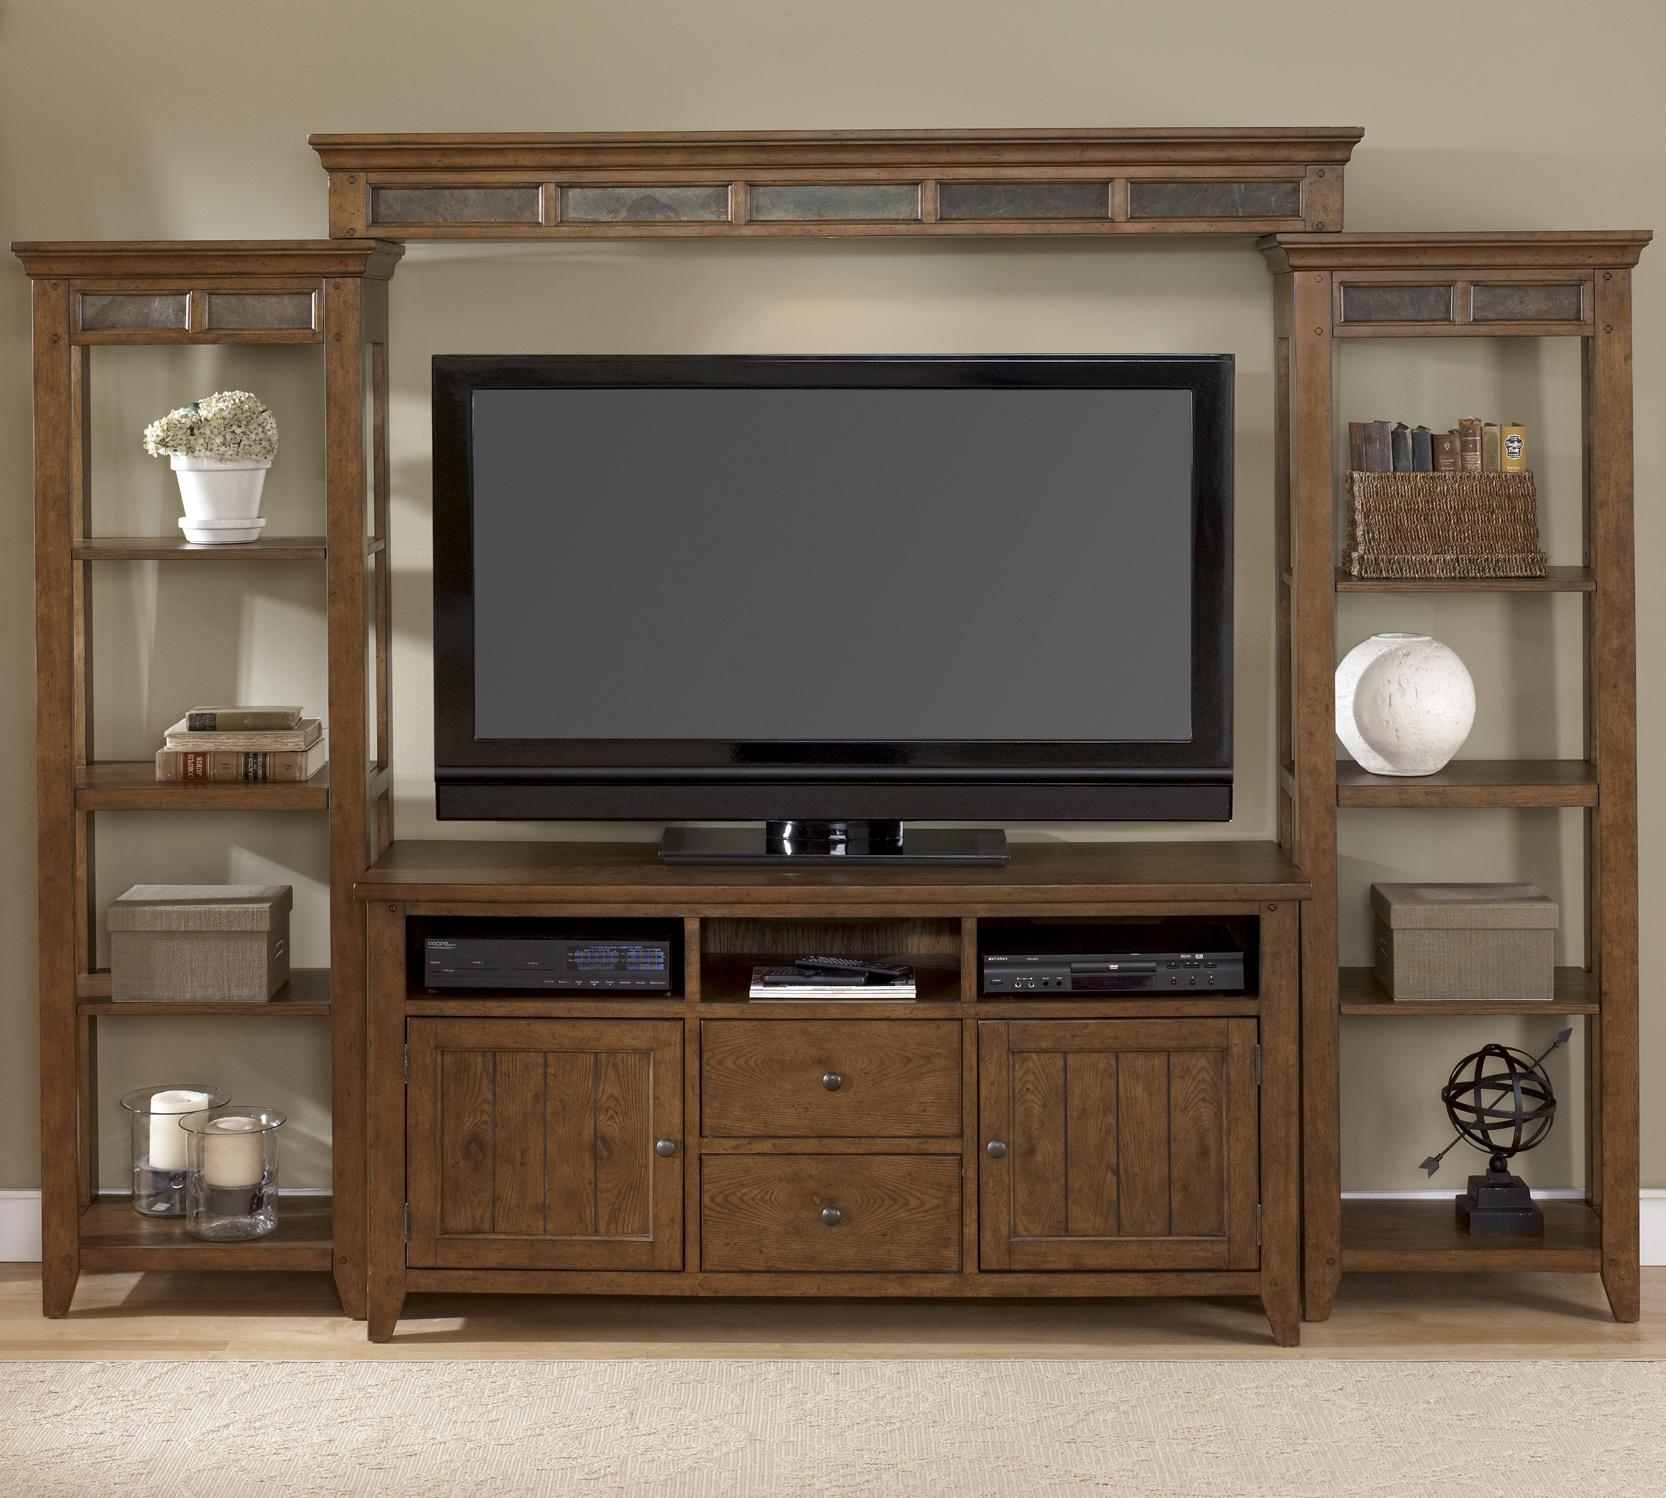 Liberty Furniture Hearthstone Entertainment Center with Piers - Item Number: 382-ENTW-SET52